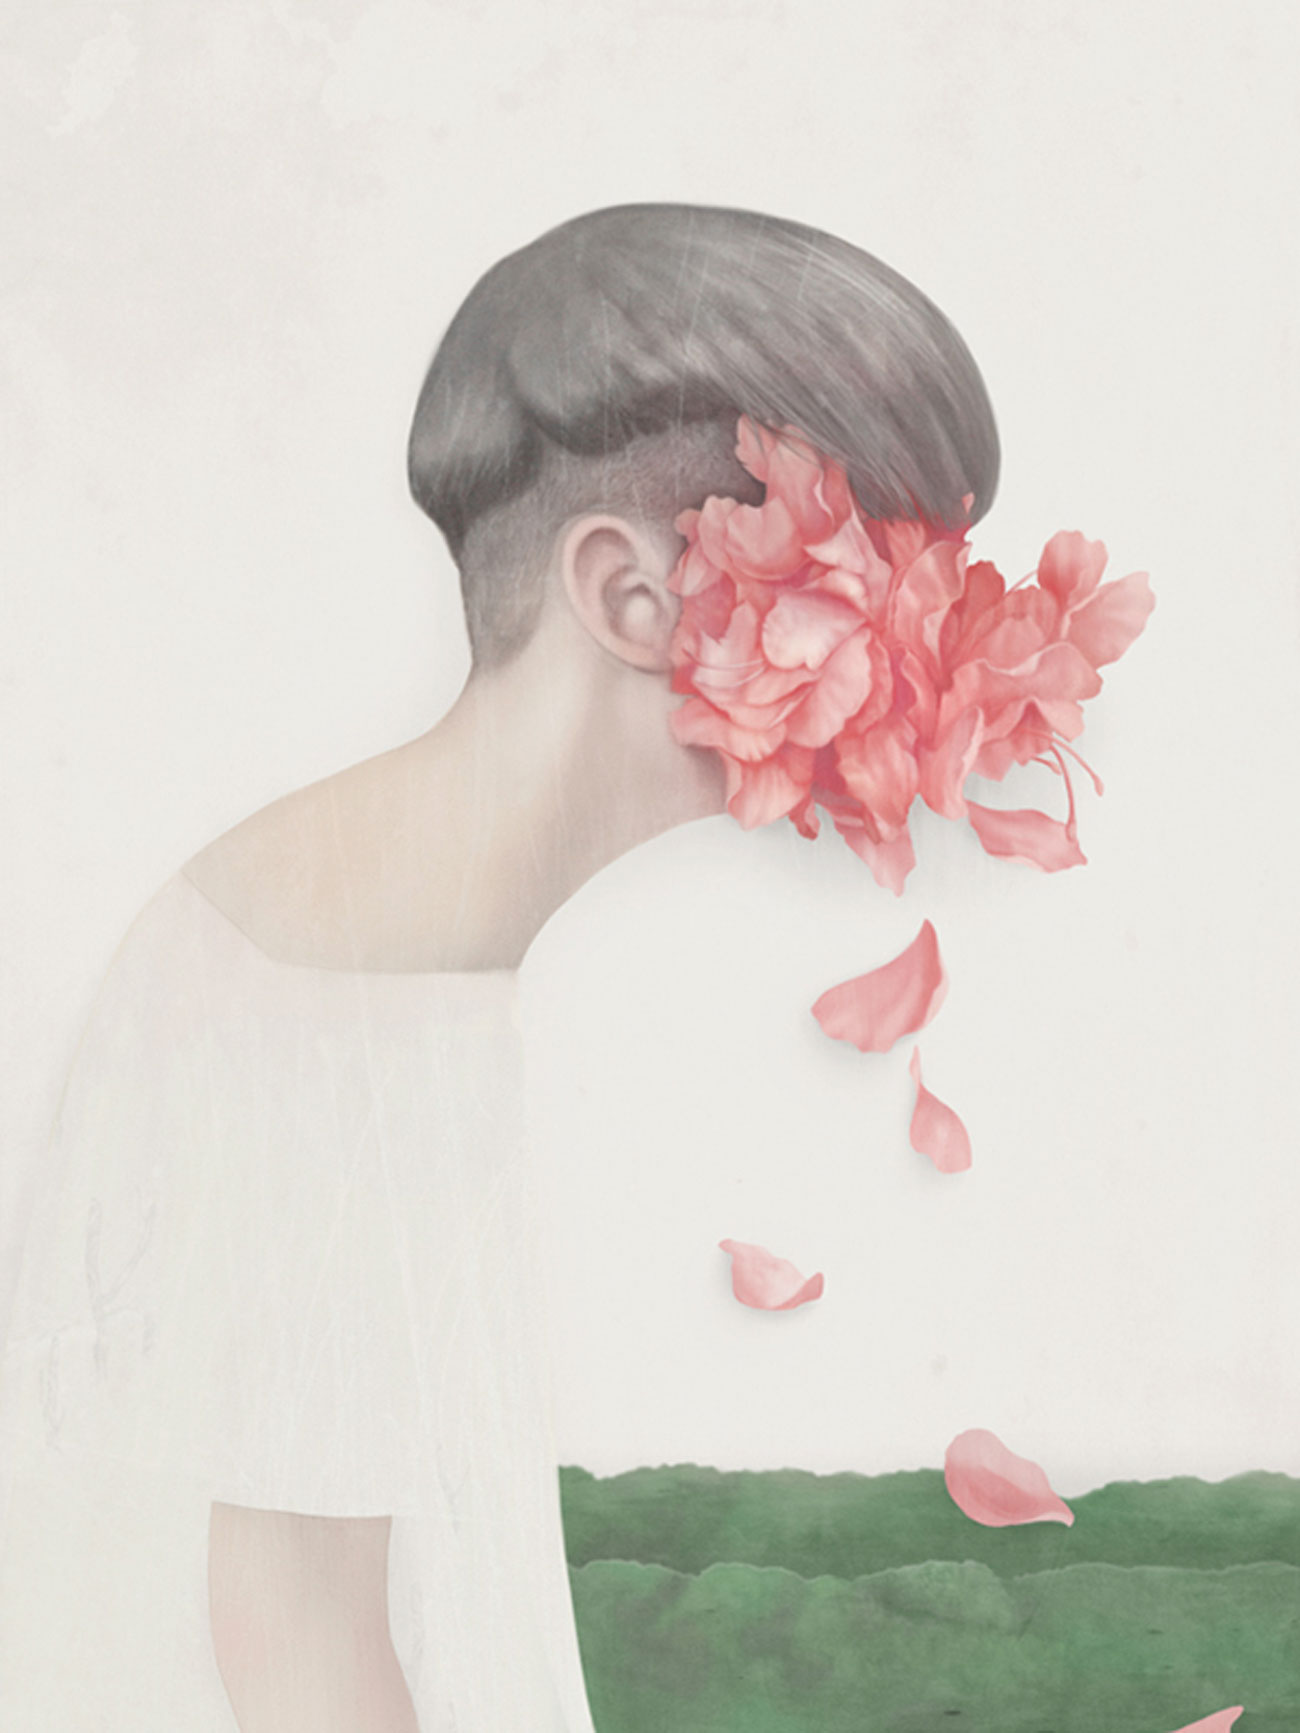 HSIAO-RON CHENG flora